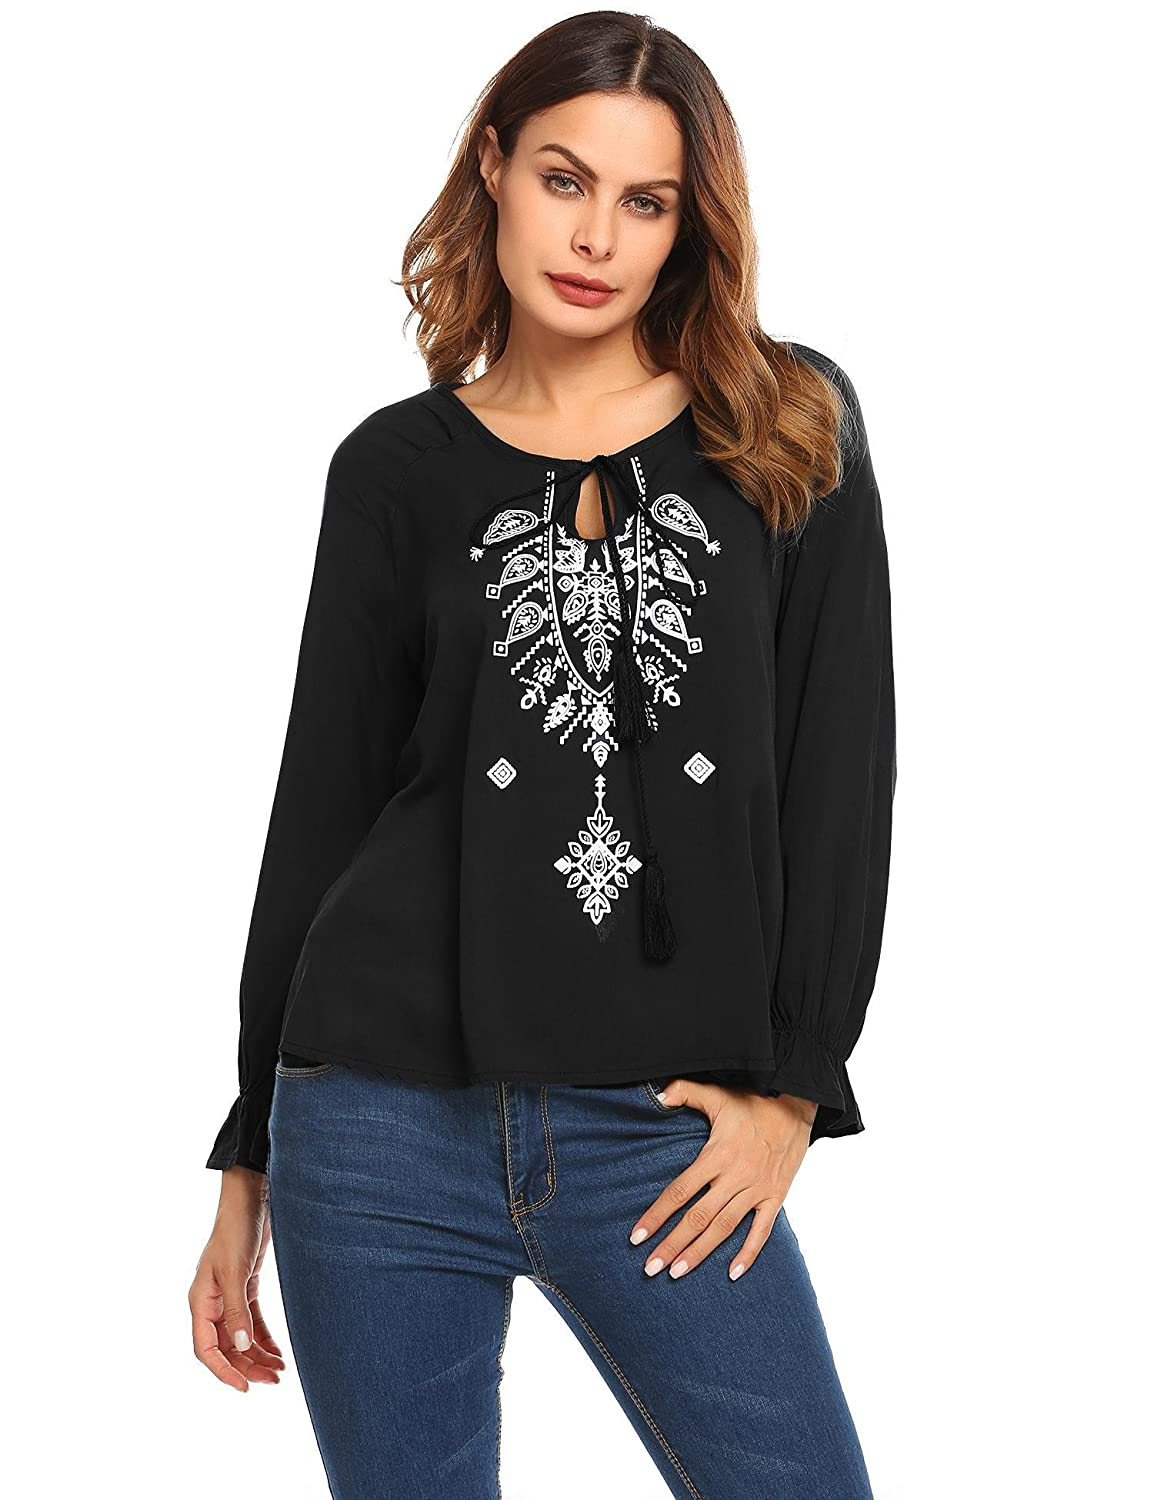 65db4ed923d9 Soteer Women s Boho Casual Blouse Lace Up Embroidered Loose Tie-neck Top  Shirt at Amazon Women s Clothing store